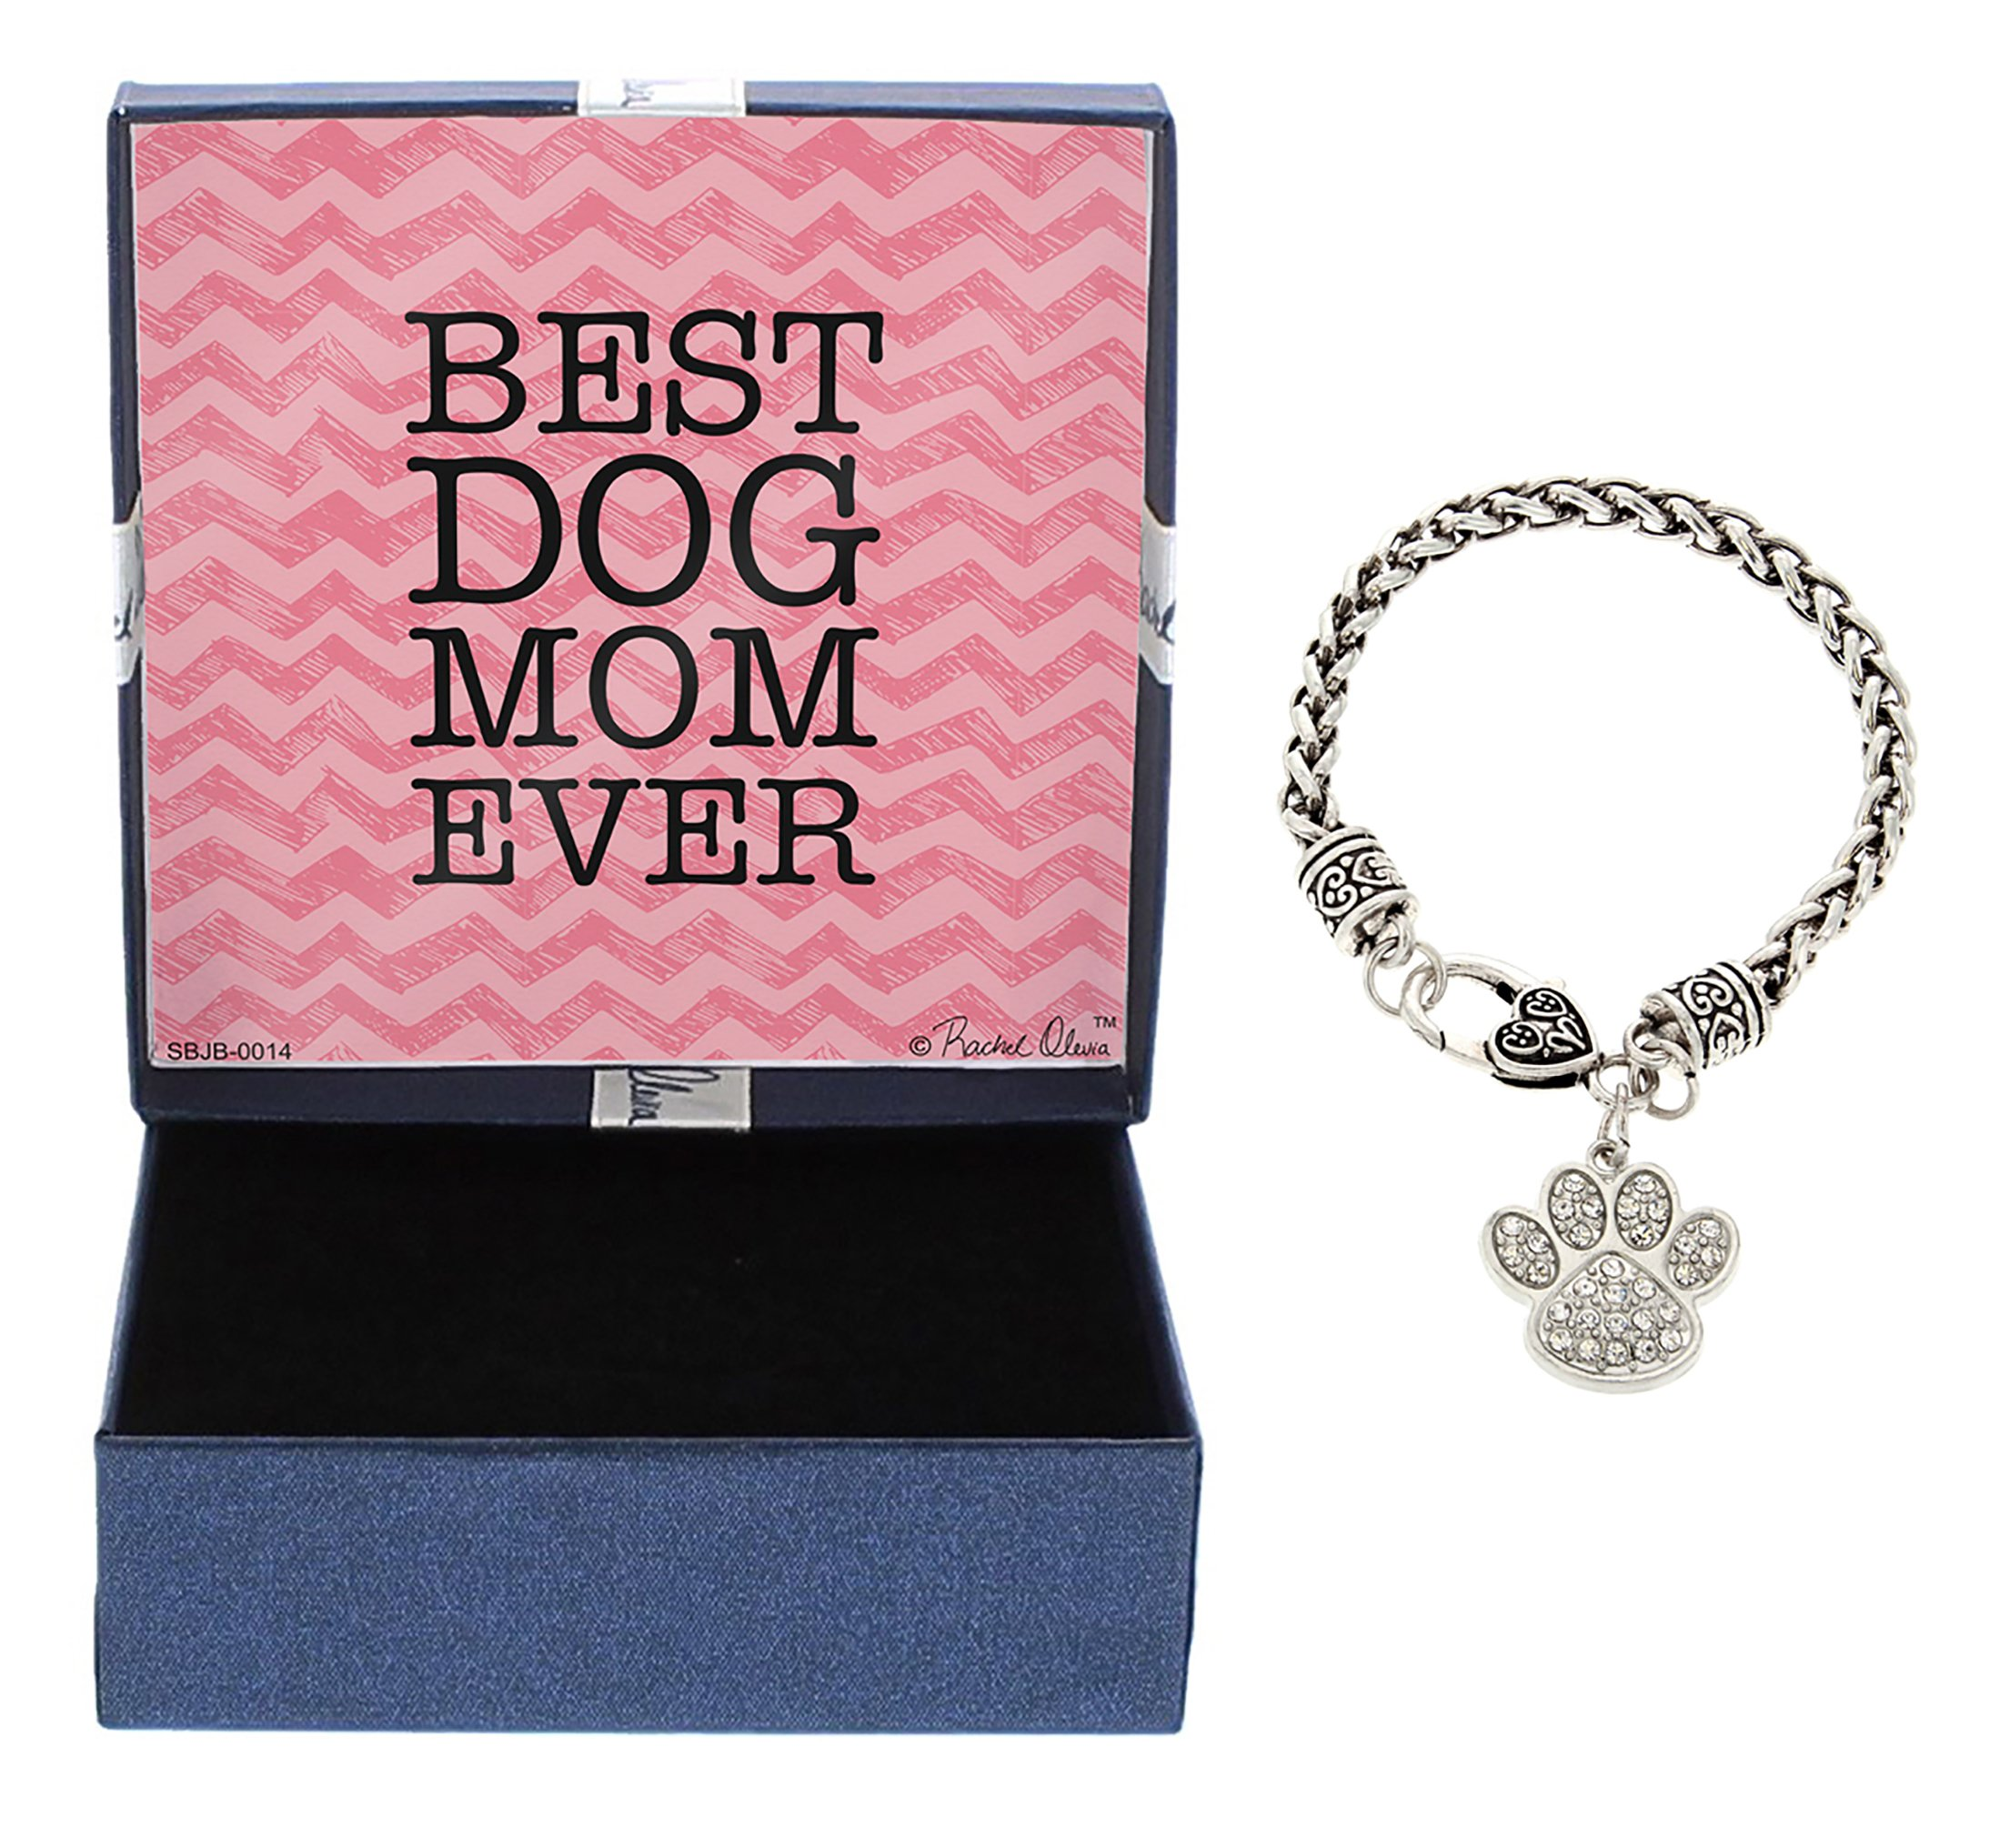 Mother's Day Gifts Best Dog Mom Ever Bracelet Silver-Tone Love Spelled with Dog Pawprint Charm Bracelet Jewelry Box Keepsake Gift for Dog Lover Gifts Bracelet Mothers Day Gift Idea For A Dog Mom